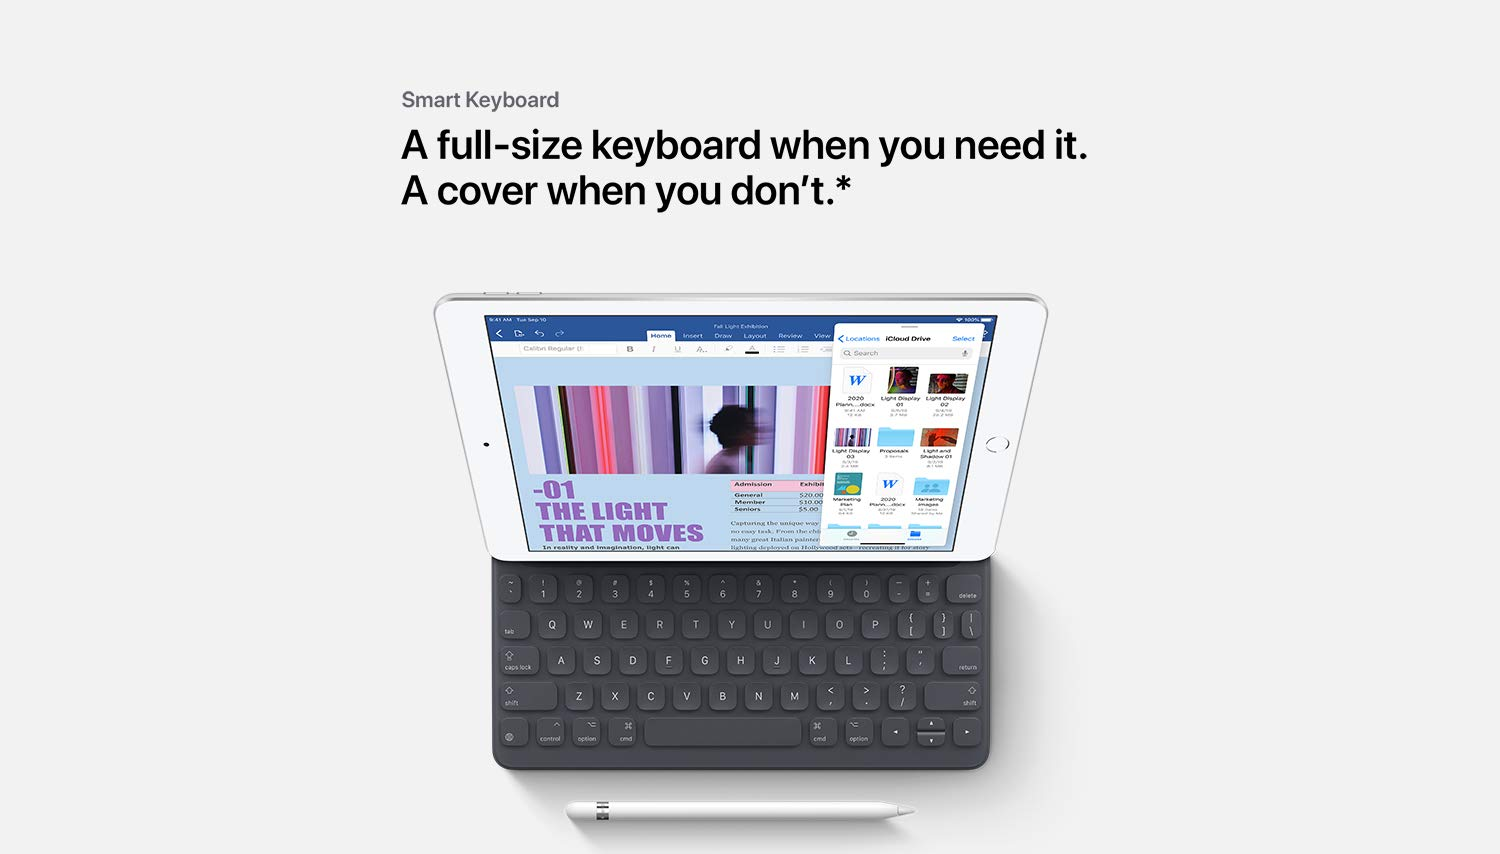 Smart Keyboard A full-size keyboard when you need it. A cover when you don't.